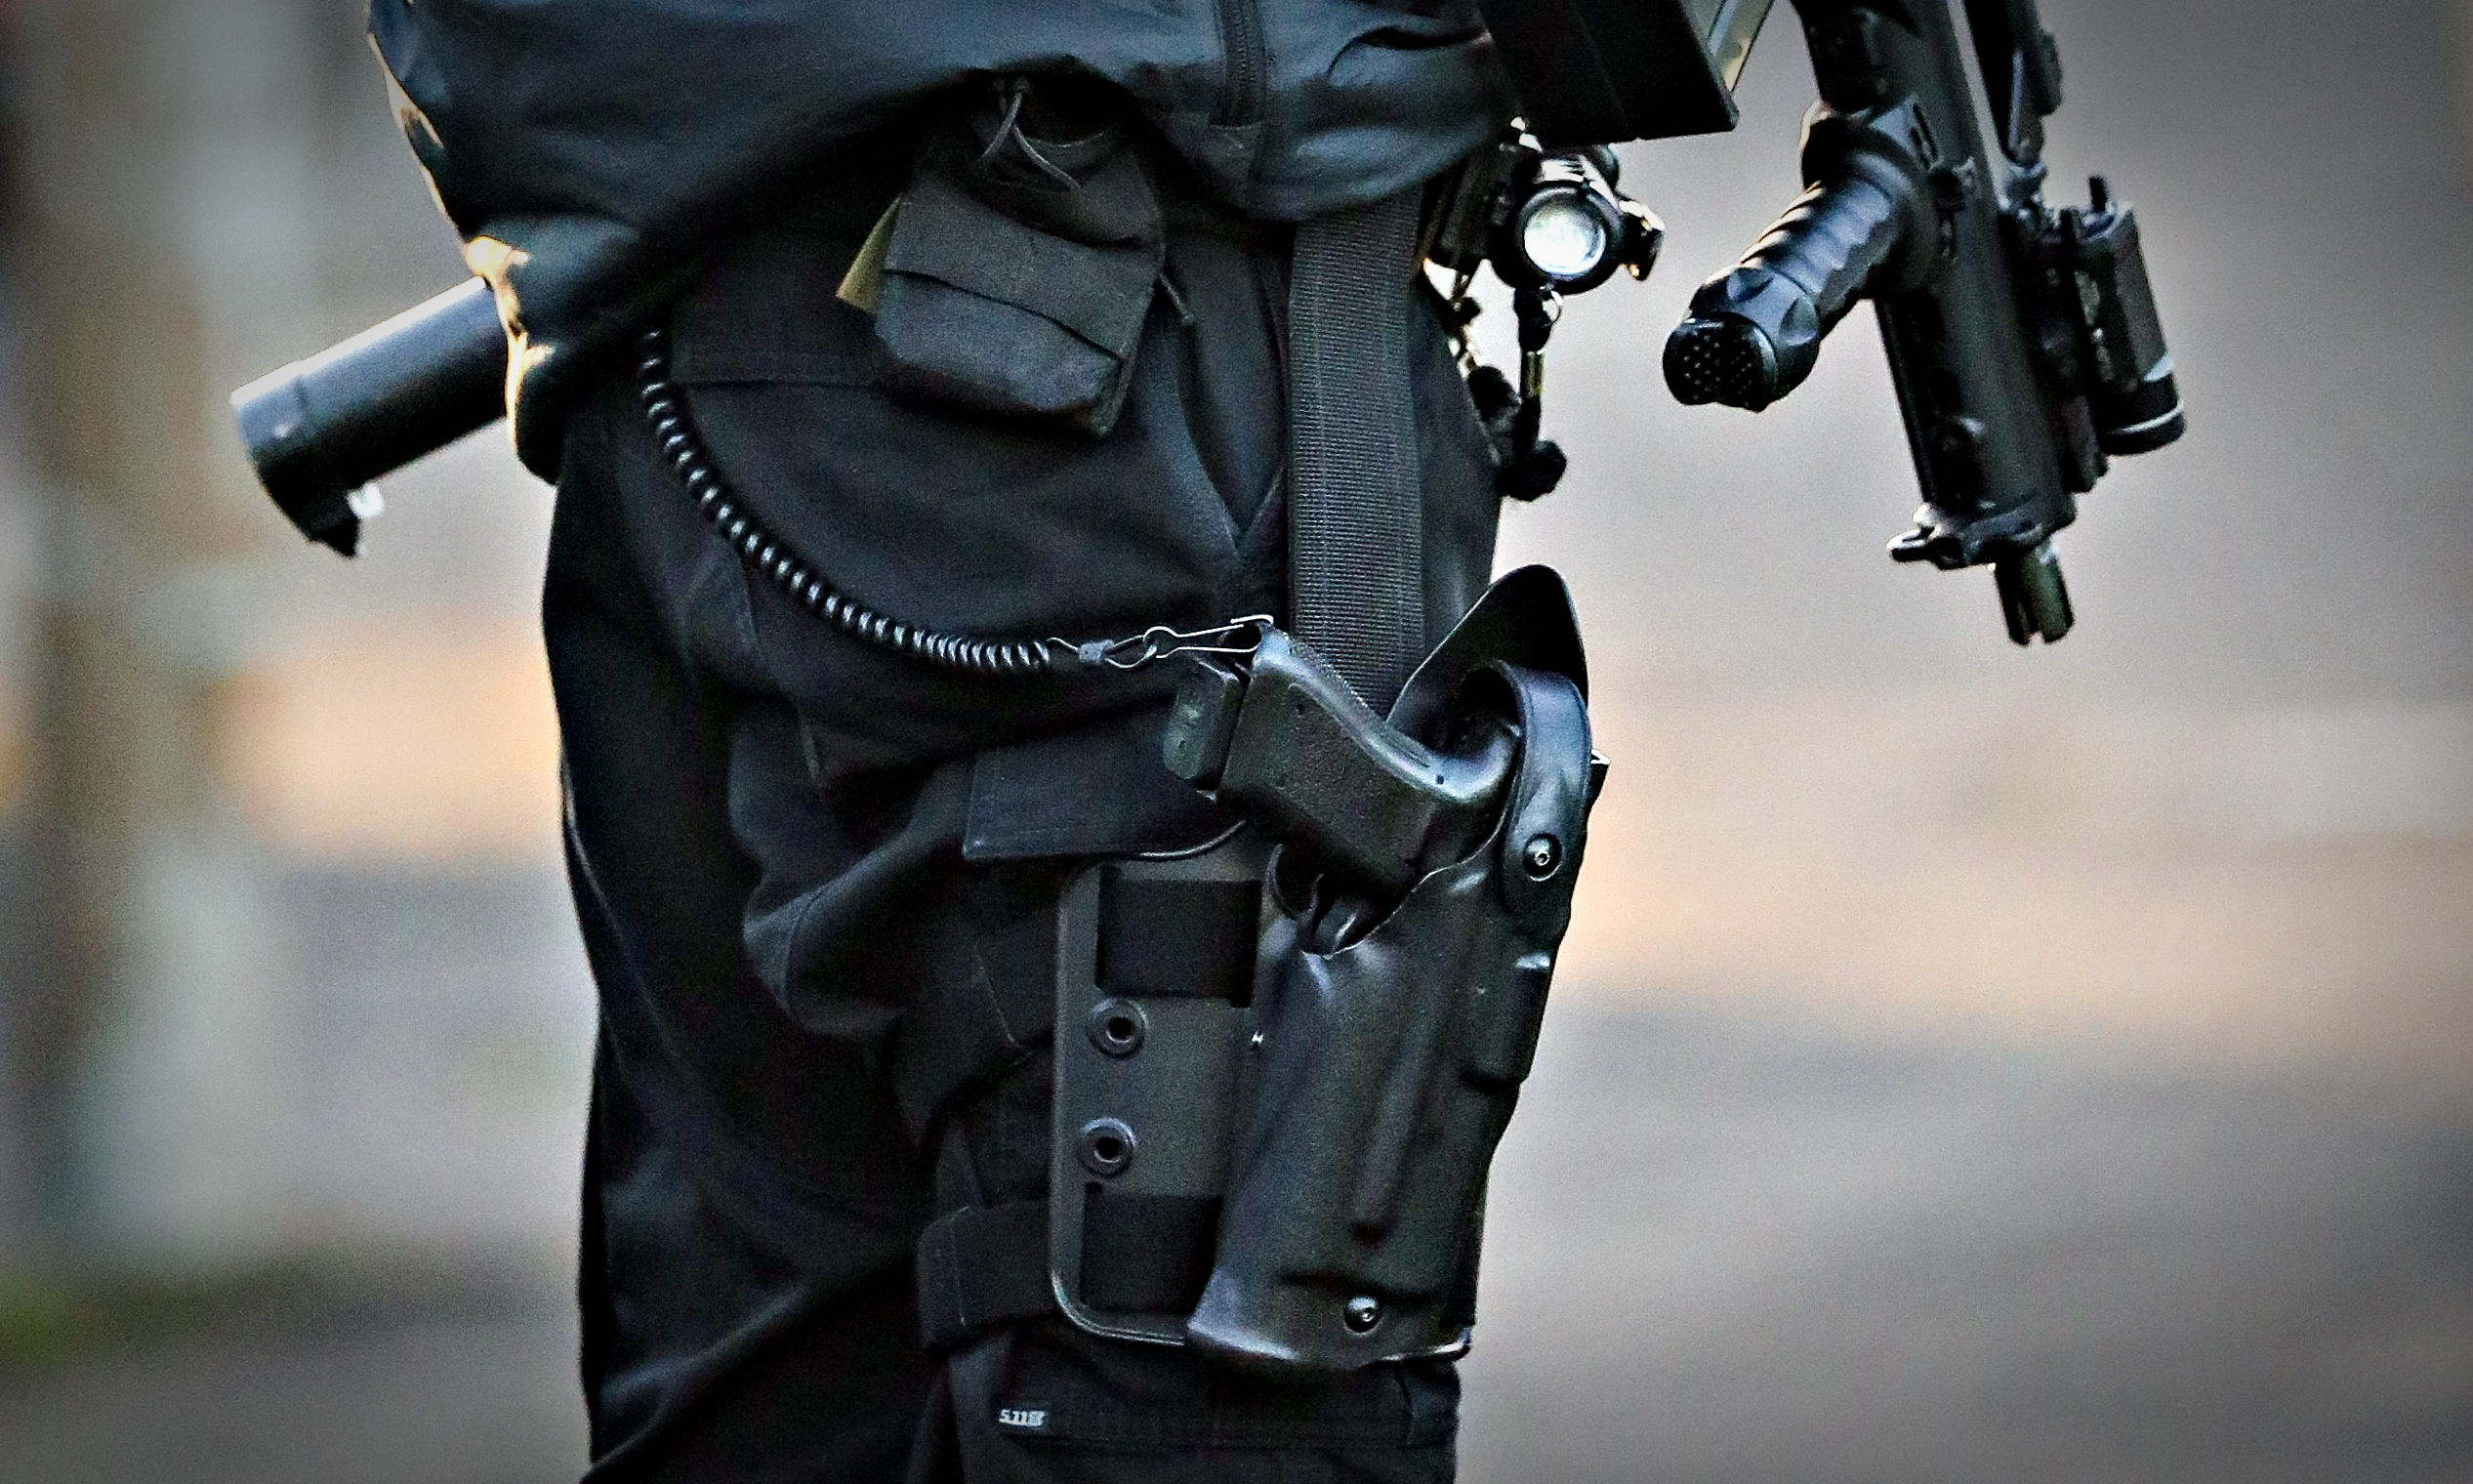 An armed police officer.